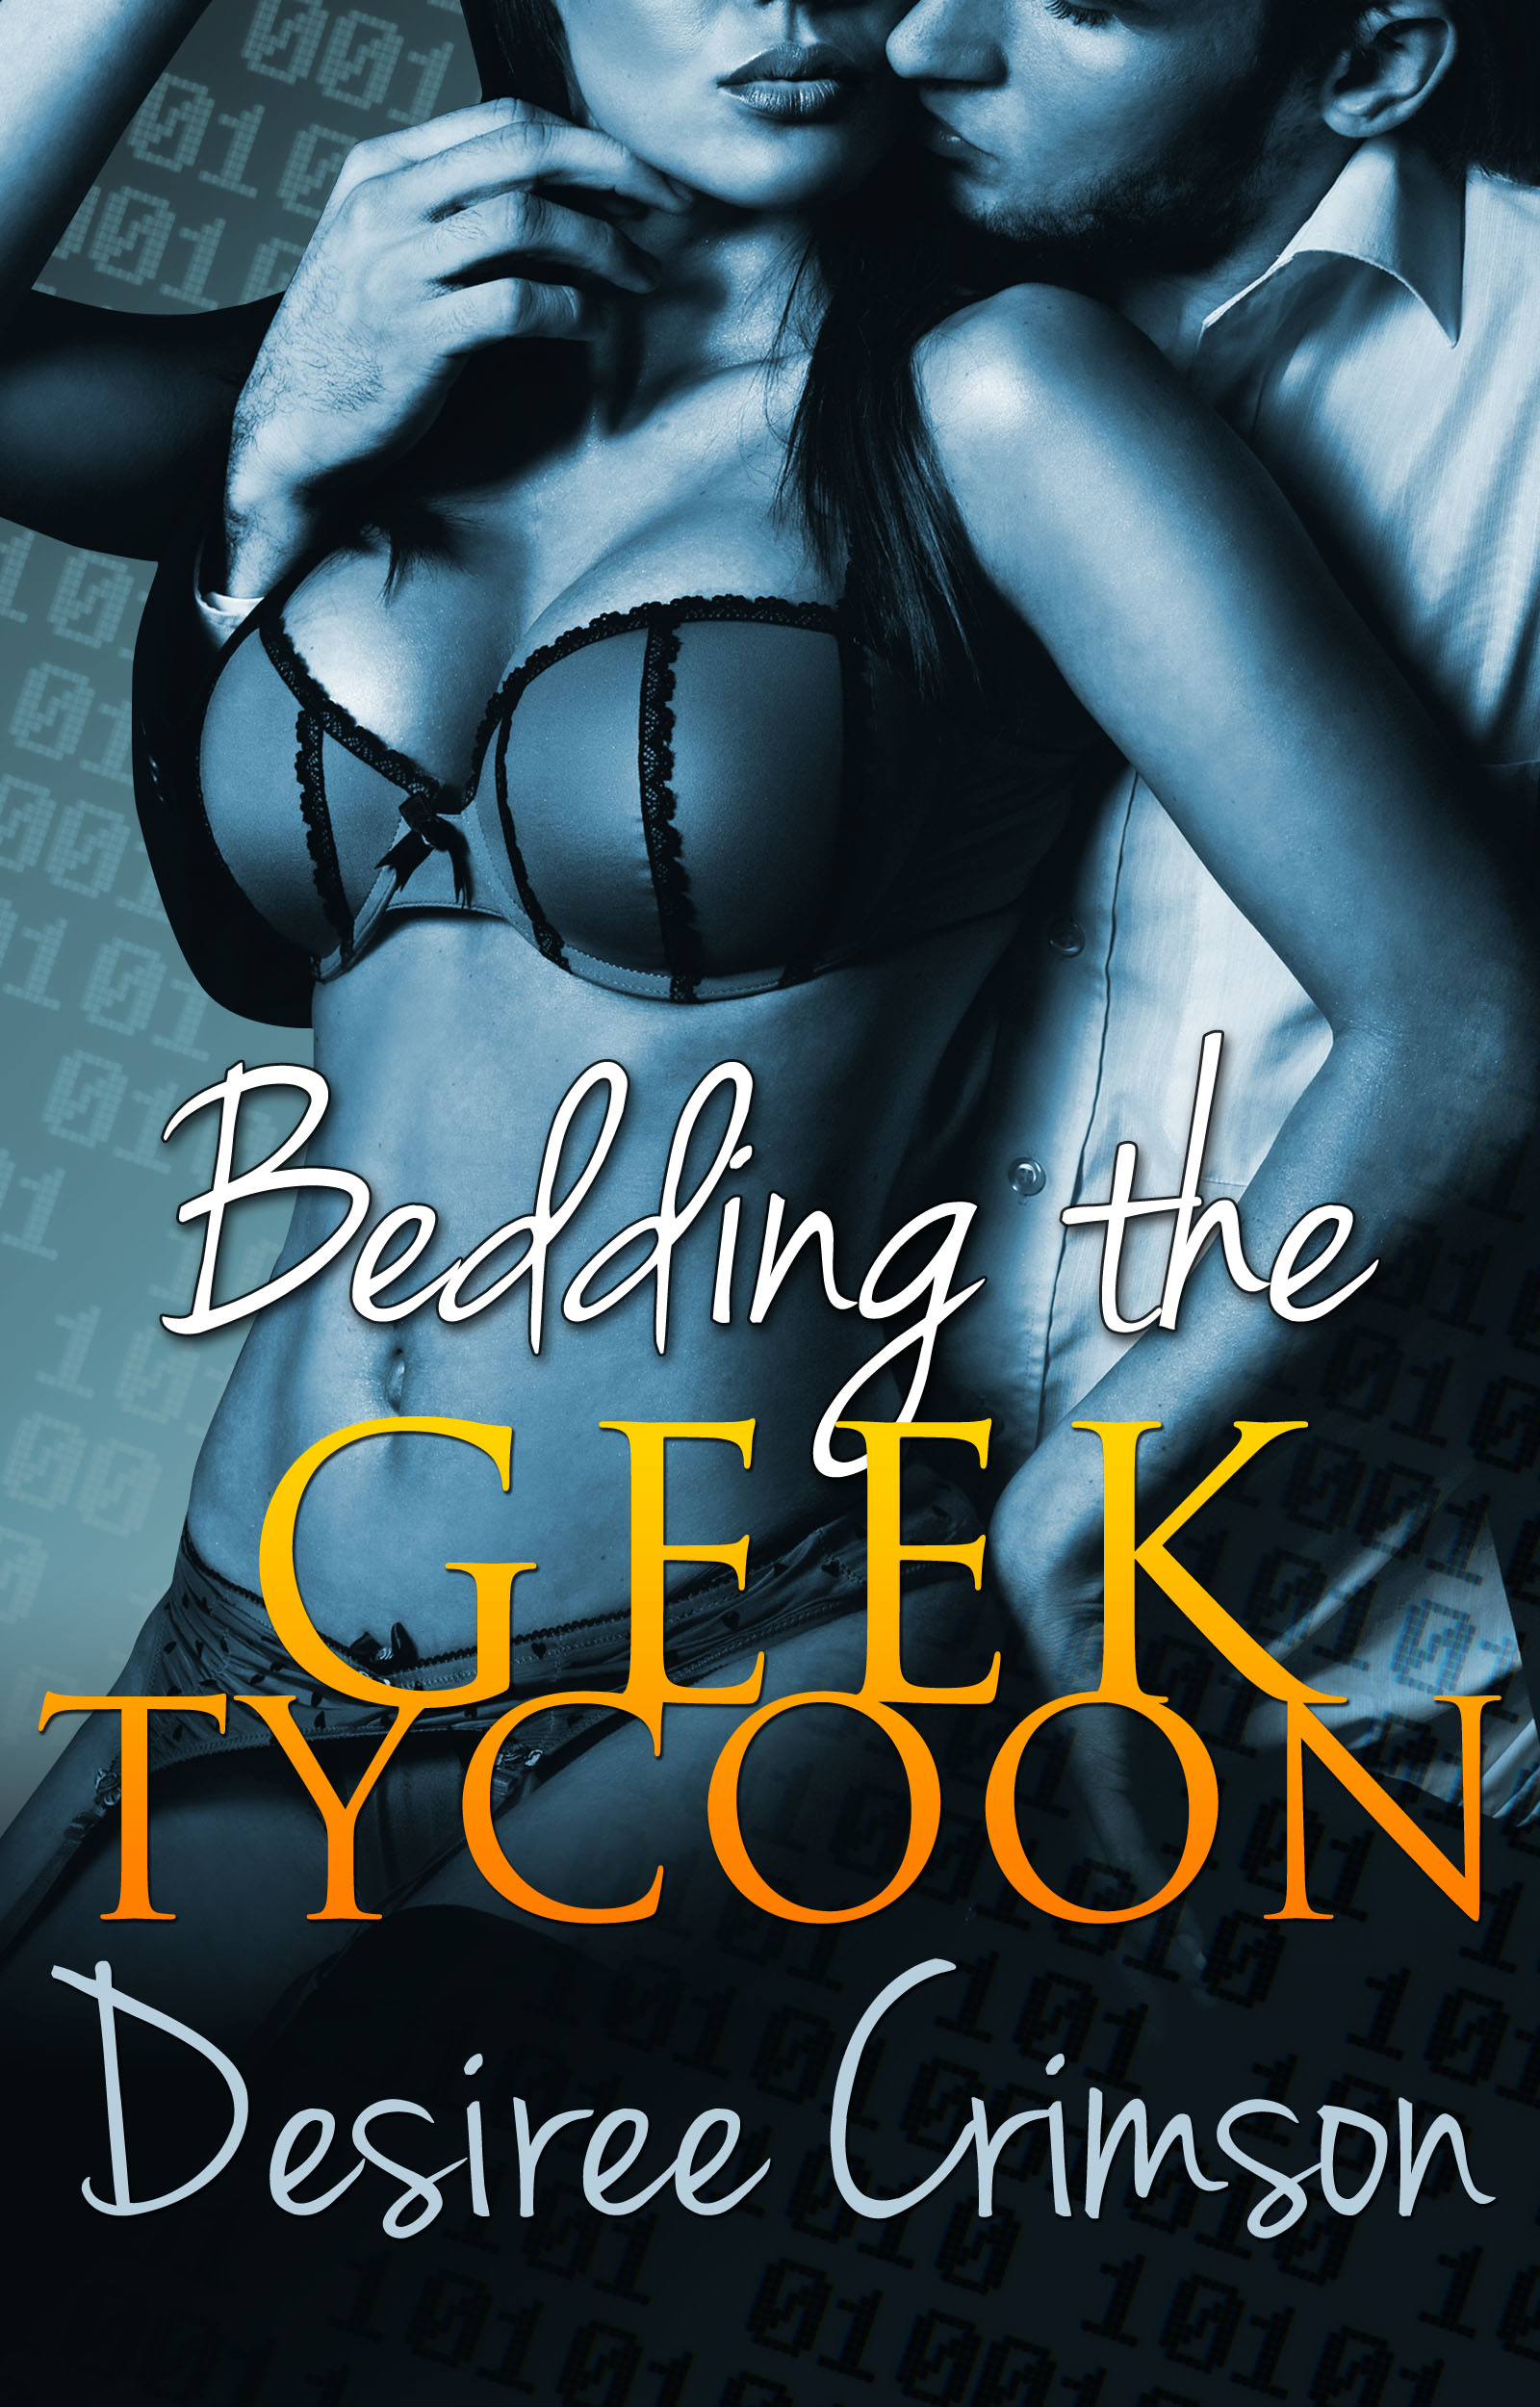 Bedding the Geek Tycoon